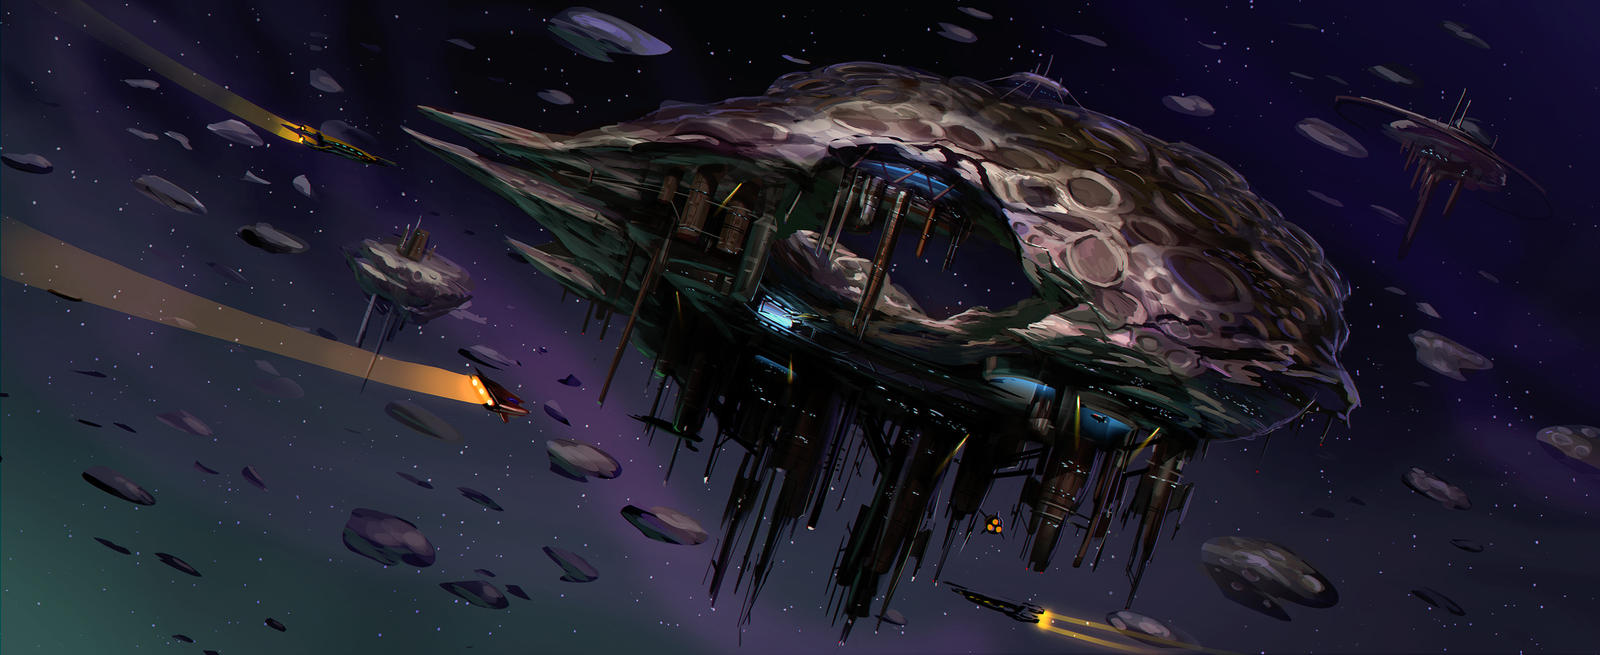 Space Pirate Asteroid Base by MeckanicalMind